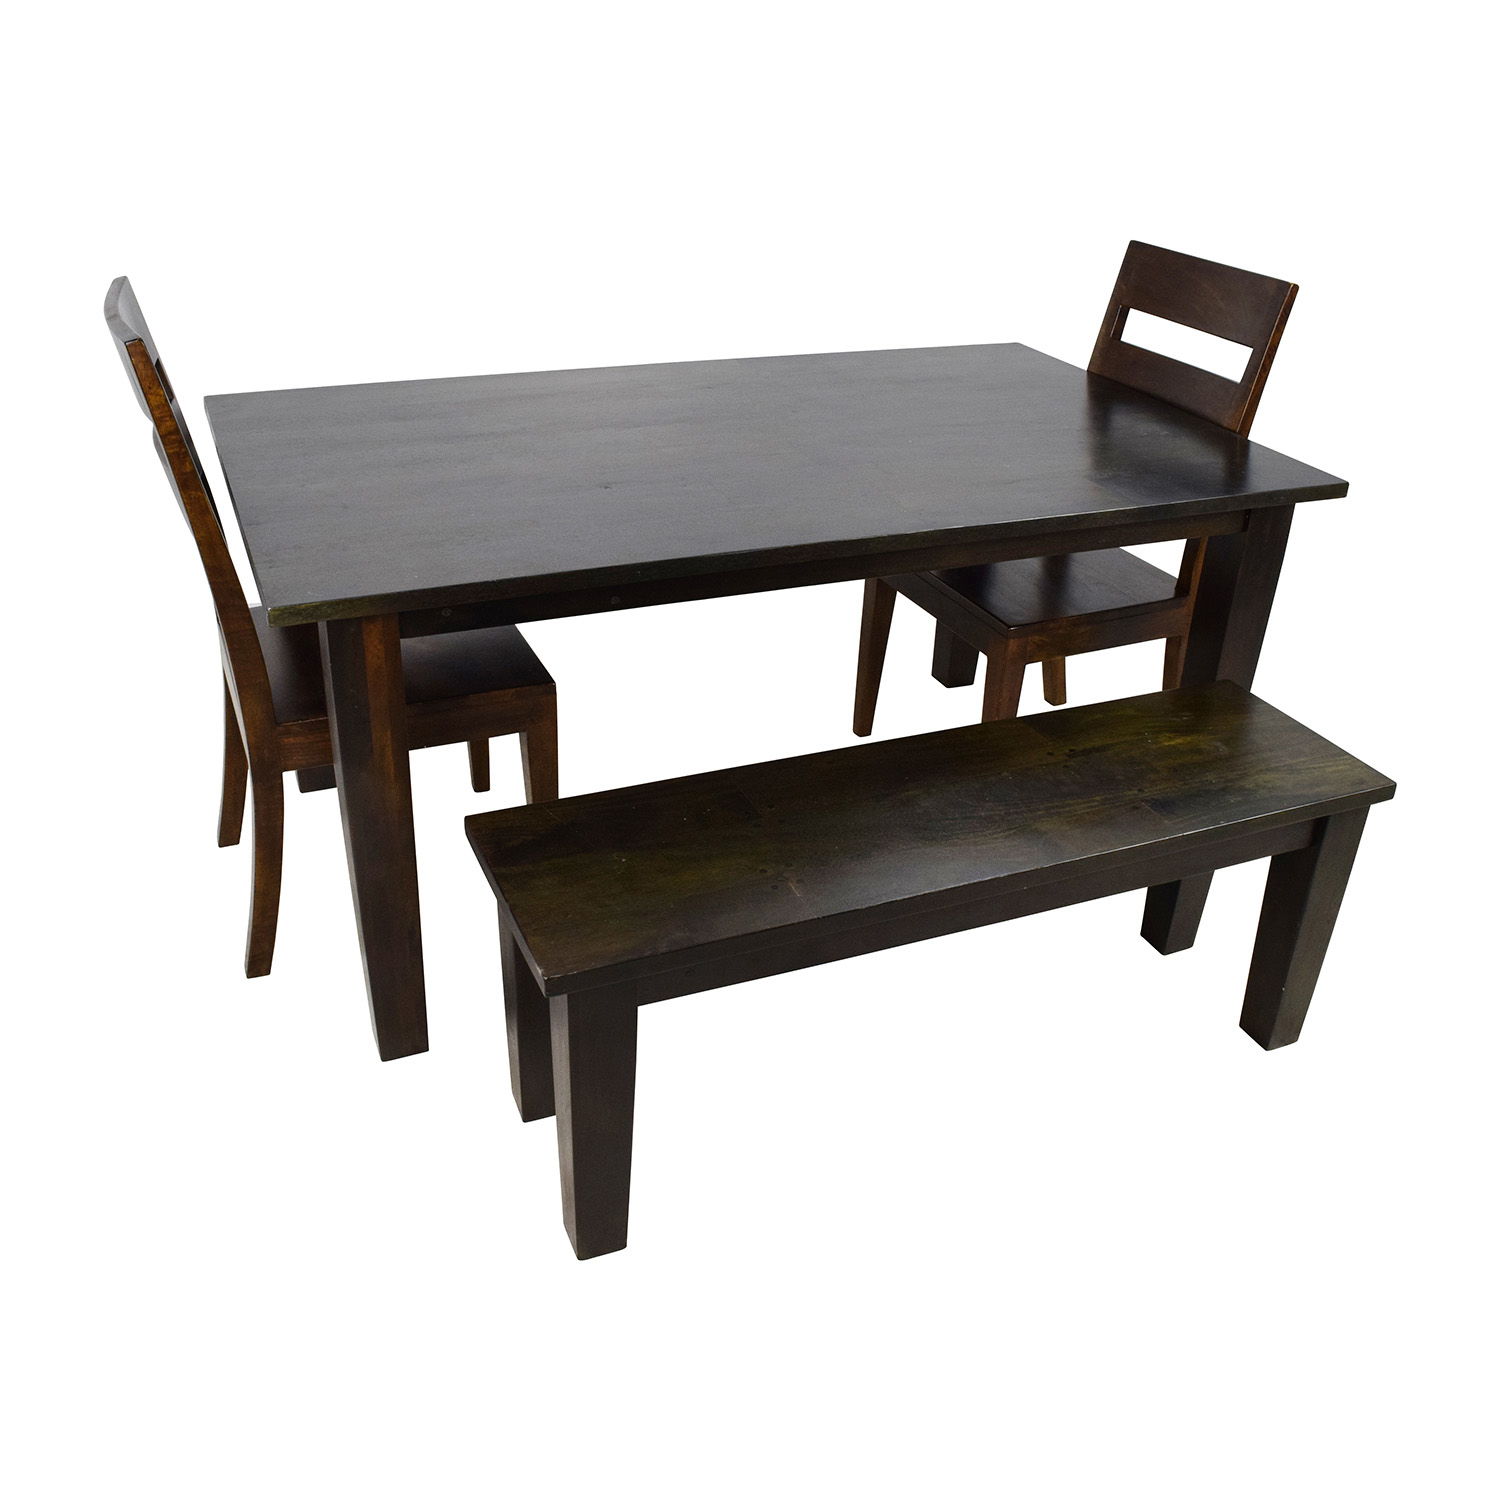 Crate and Barrel Crate & Barrel Basque Java Dining Table Set